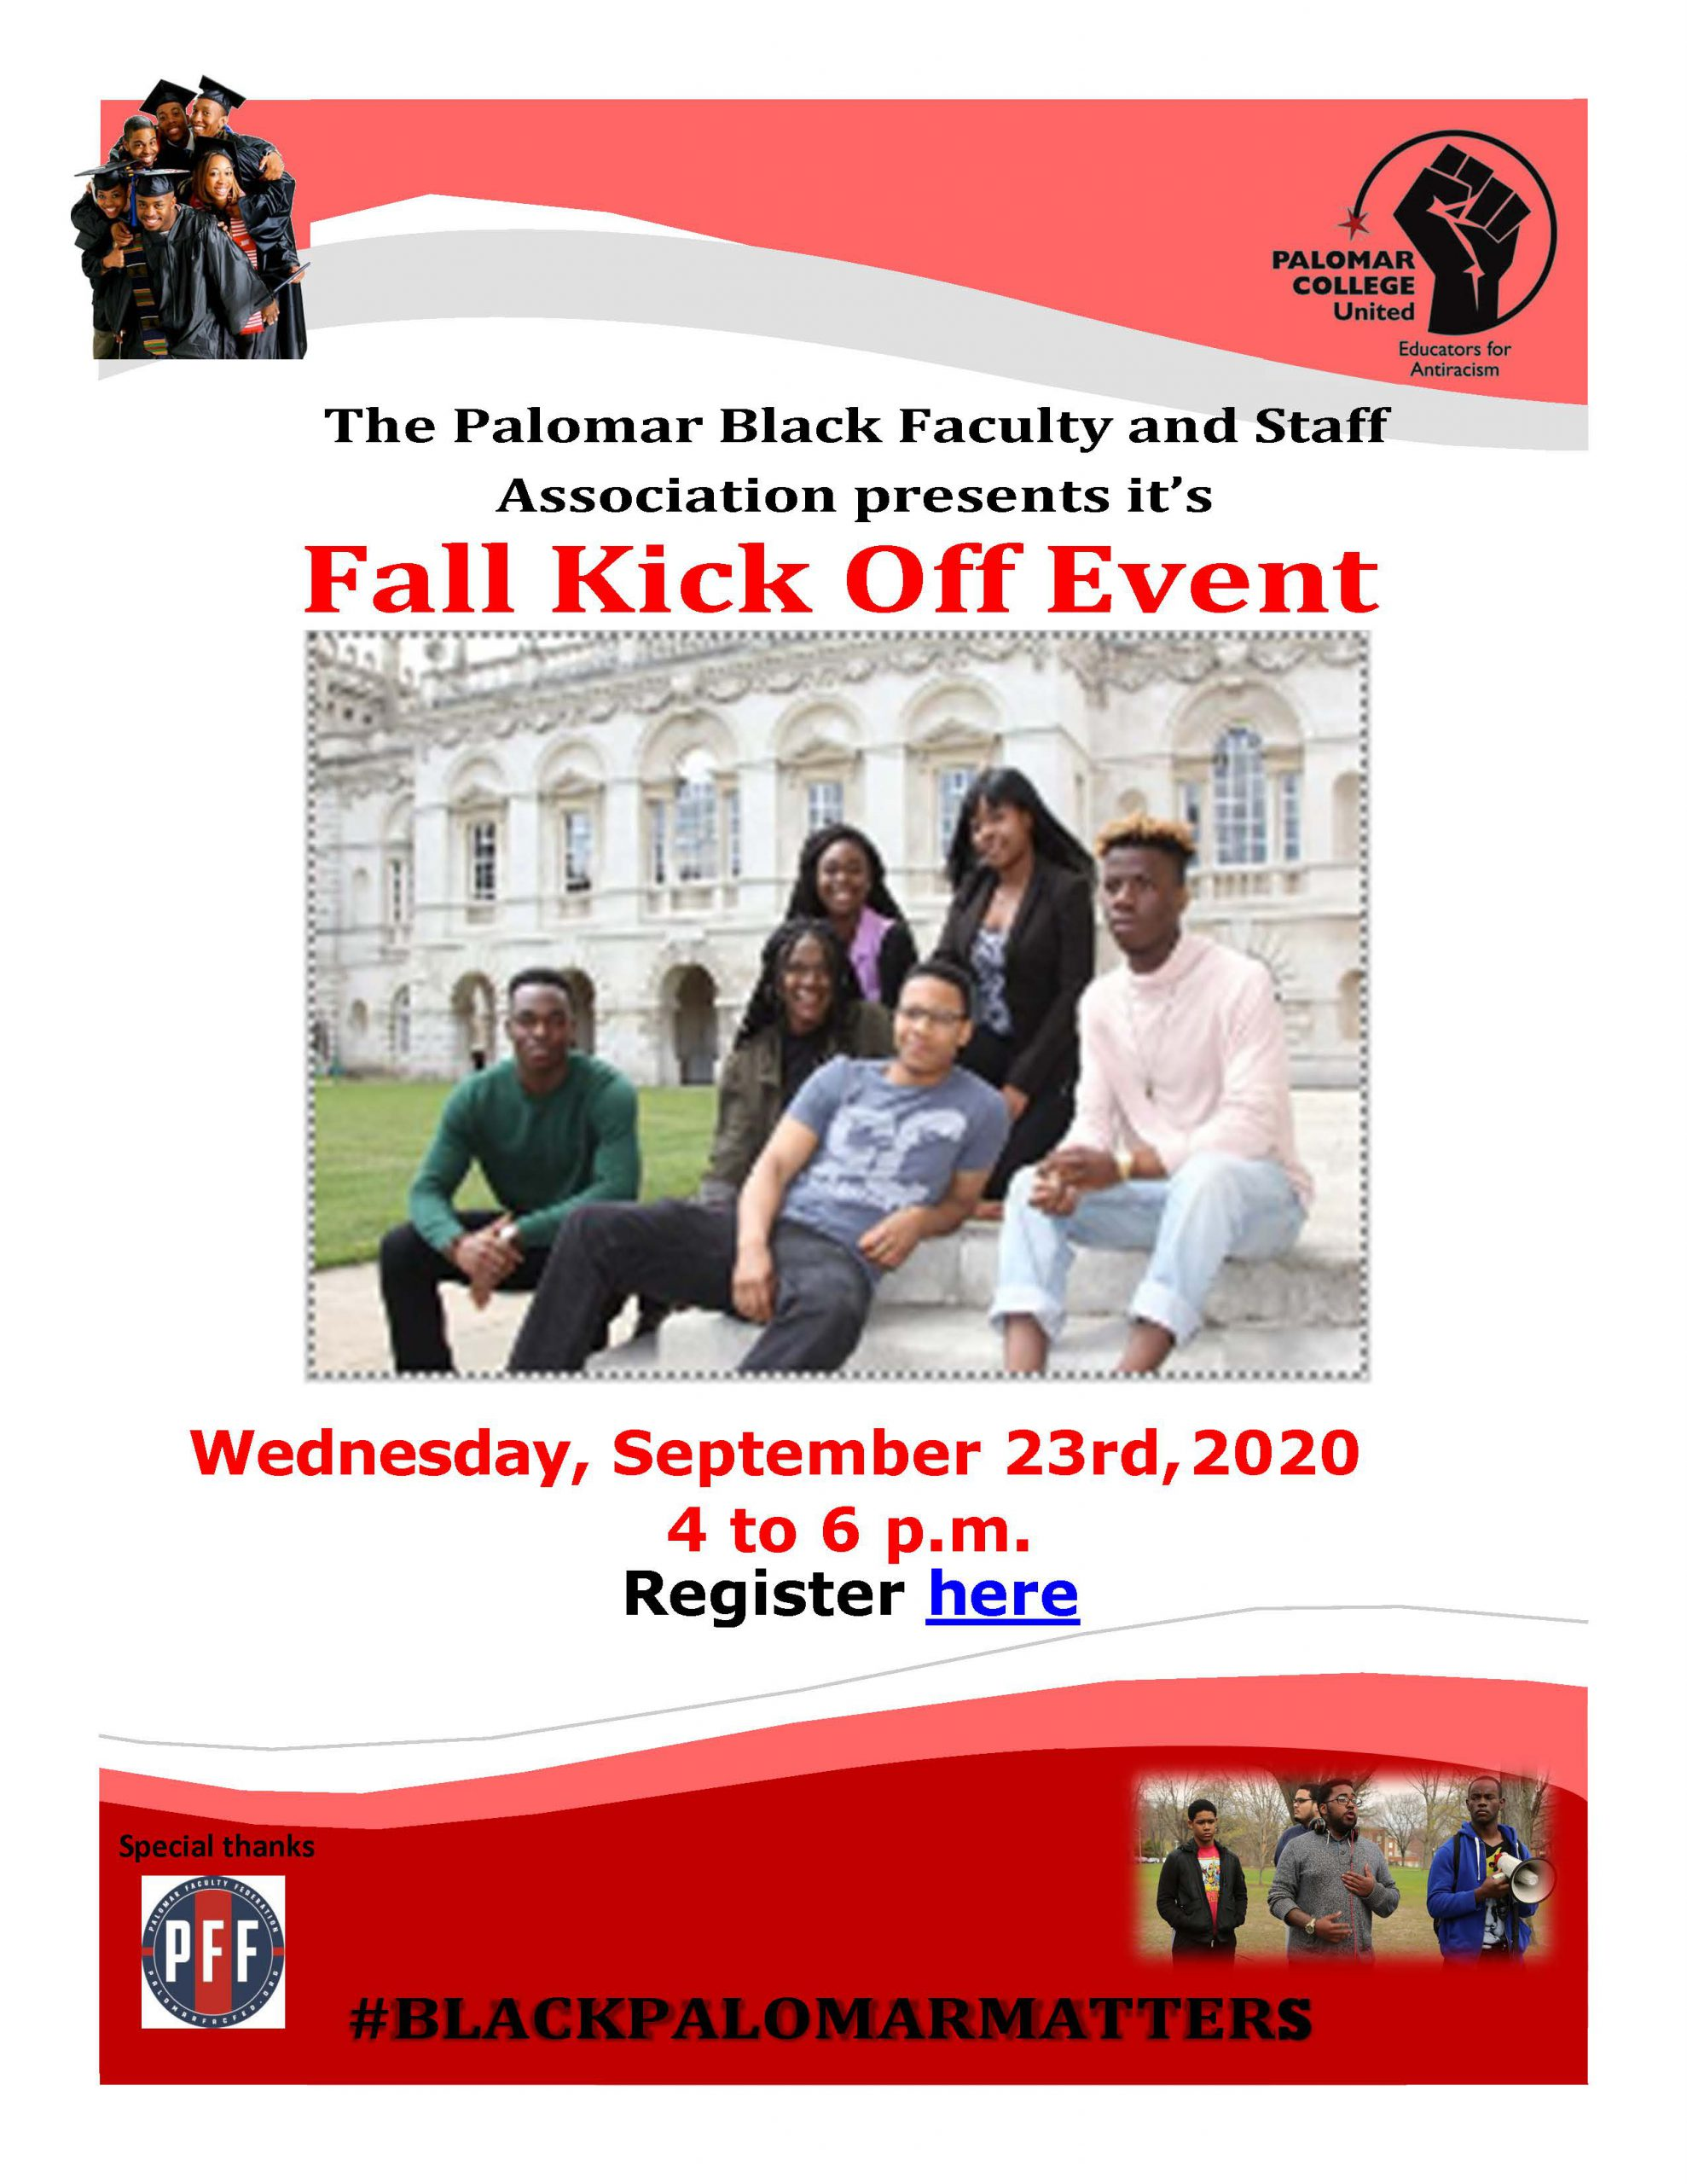 Kick Off Event on September 23 from 4 pm - 6 pm.